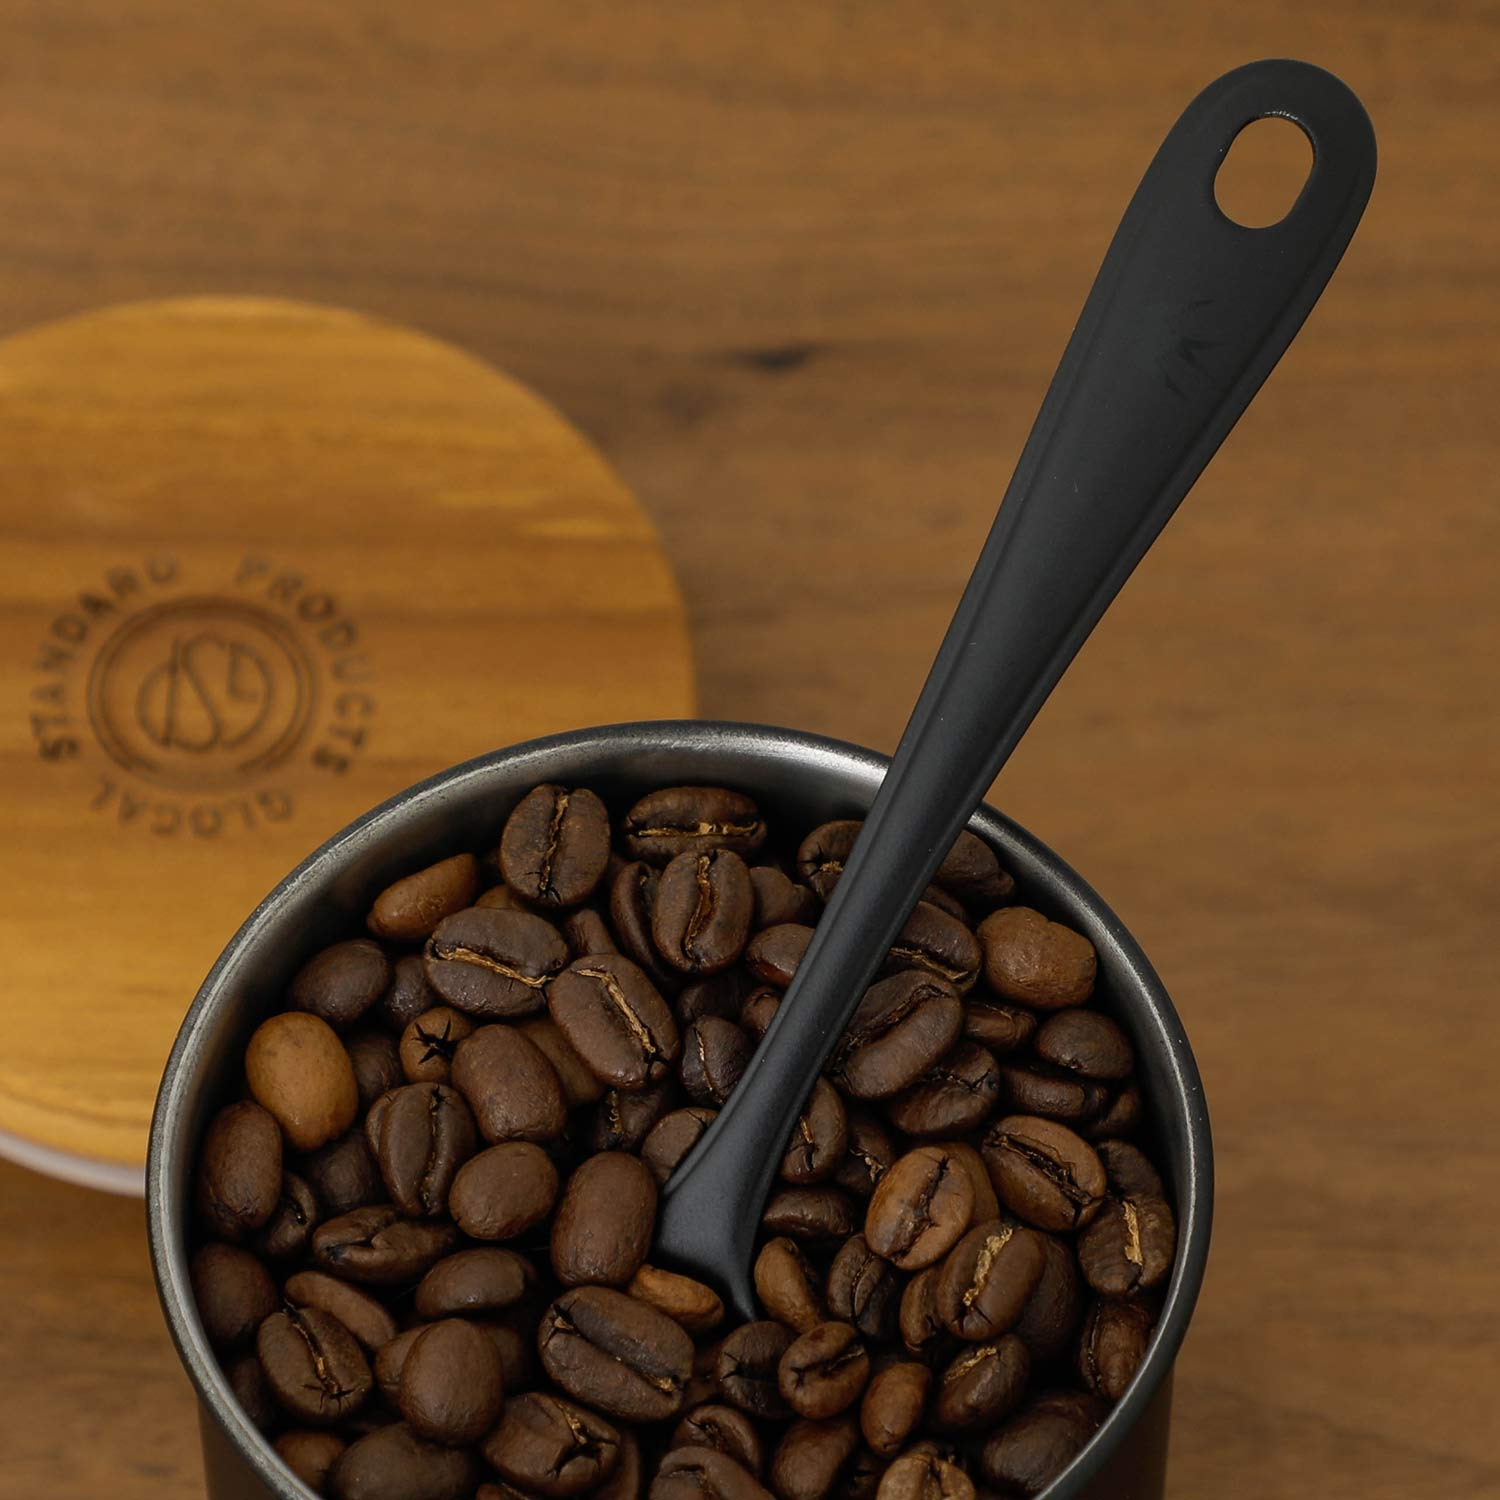 Coffee measuring spoon 軽量スプーン コーヒー ステンレス hd3466 GLOCAL OUTLET SALE TSUBAME MB PRODUCTS グローカルスタンダードプロダクツ SALE コーヒーメジャースプーン ツバメ STANDARD